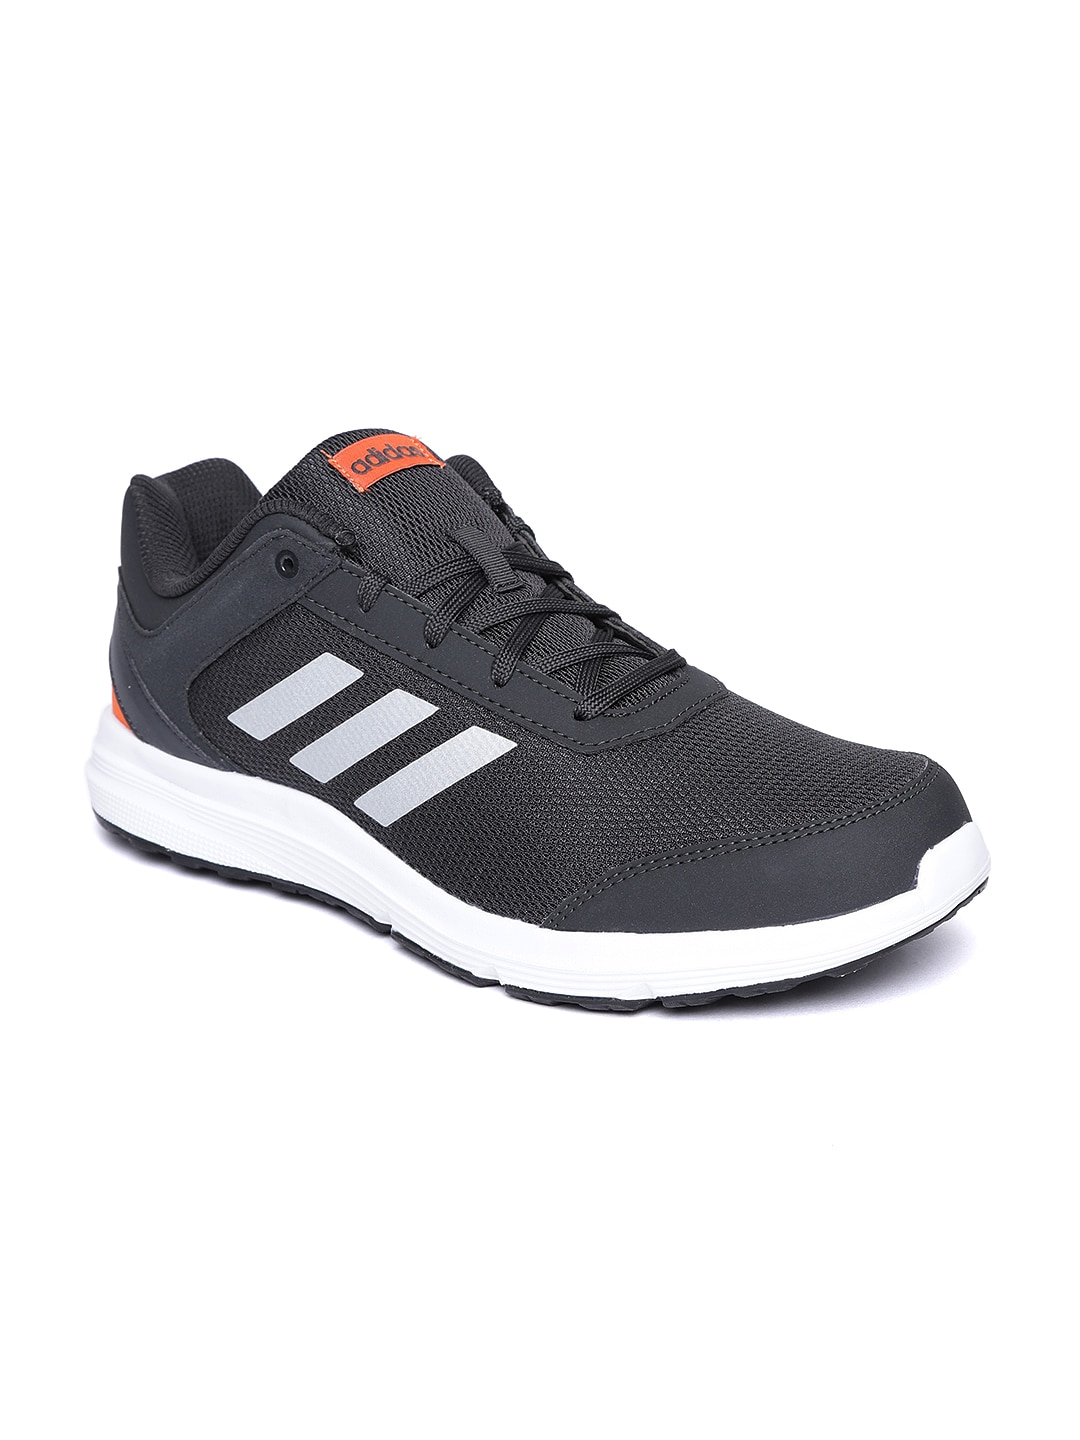 ae6104367 Adidas Shoes - Buy Adidas Shoes for Men   Women Online - Myntra